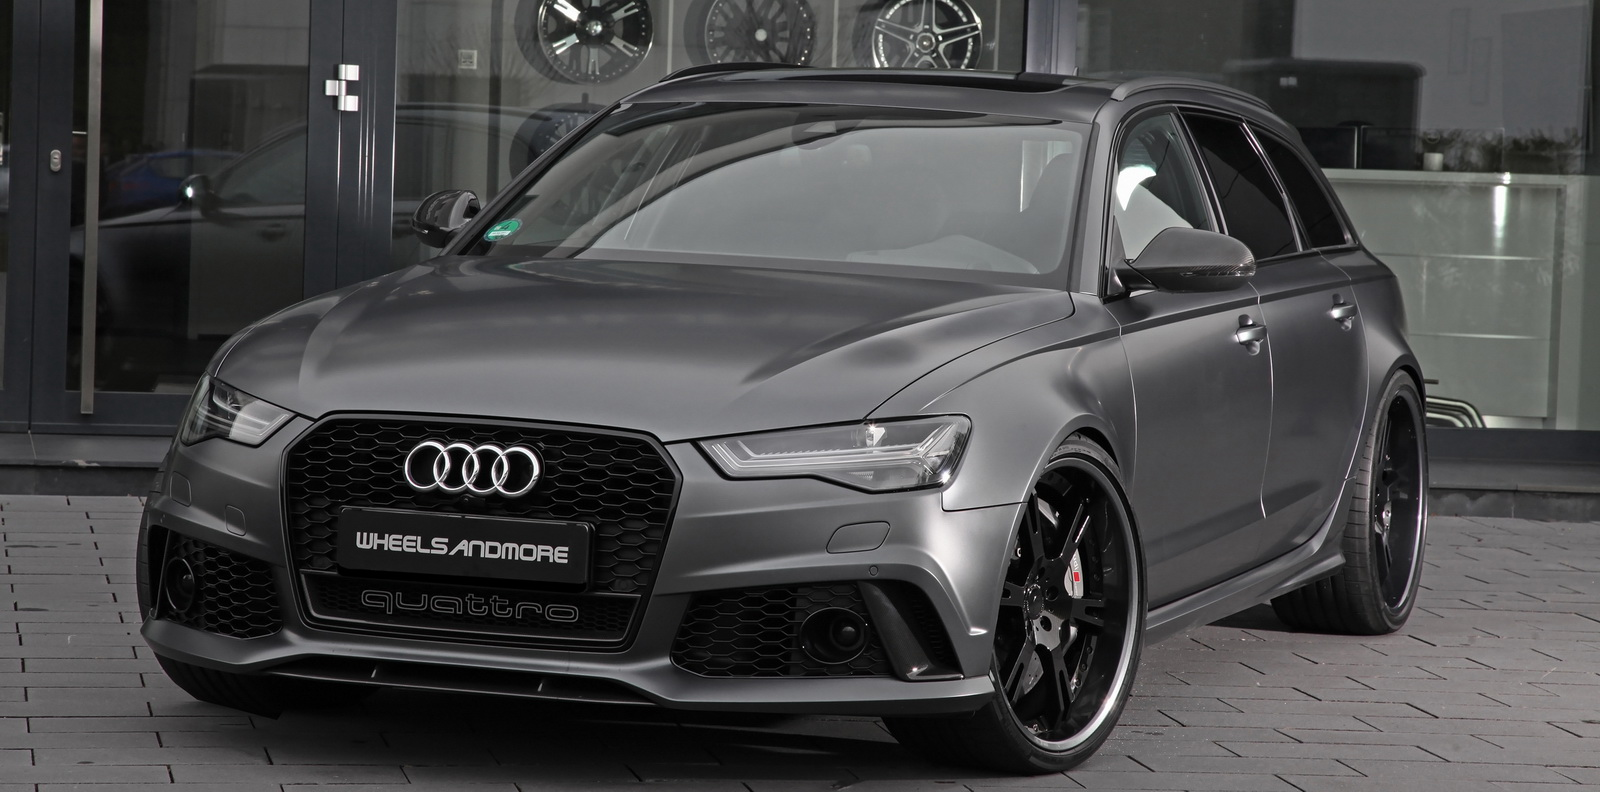 Audi Rs3 Wallpaper Hd Wheelsandmore Upgrade Rs6 Rs7 And R8 Spyder Significantly